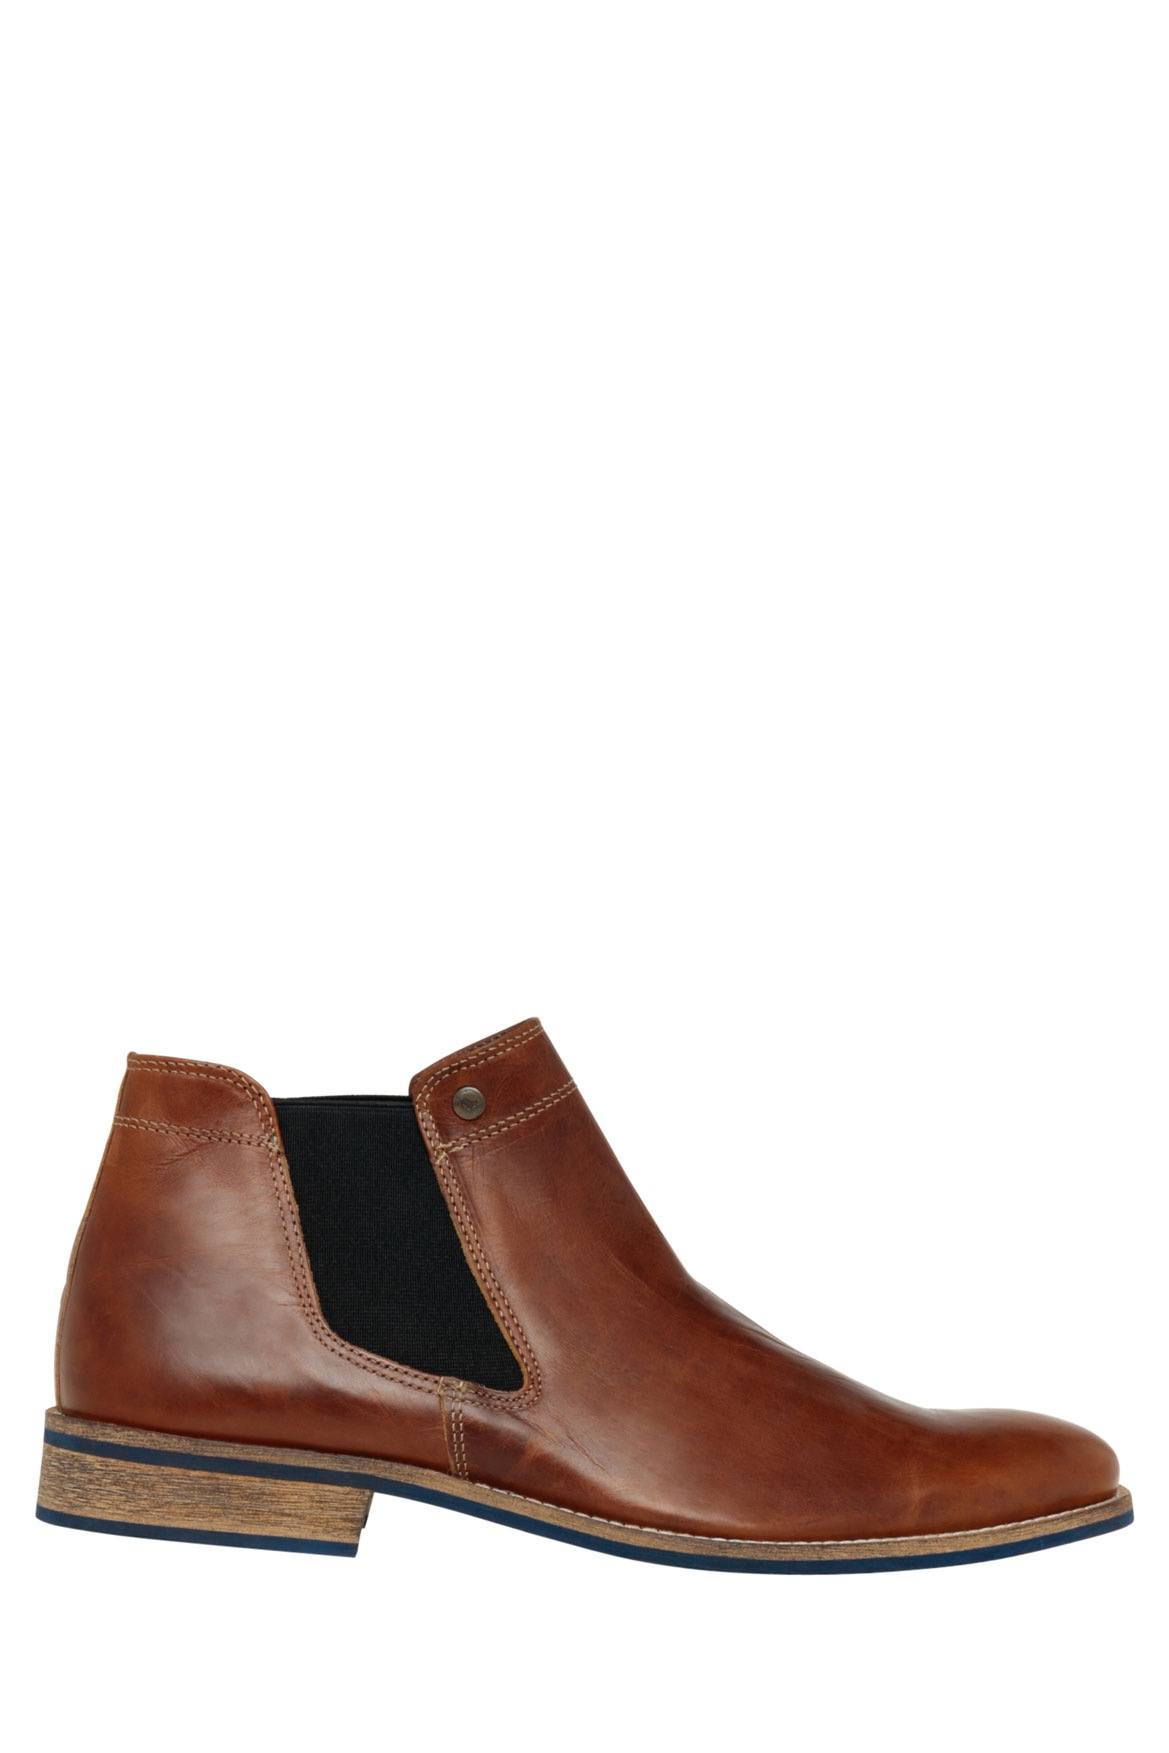 rhino leather ankle boot myer